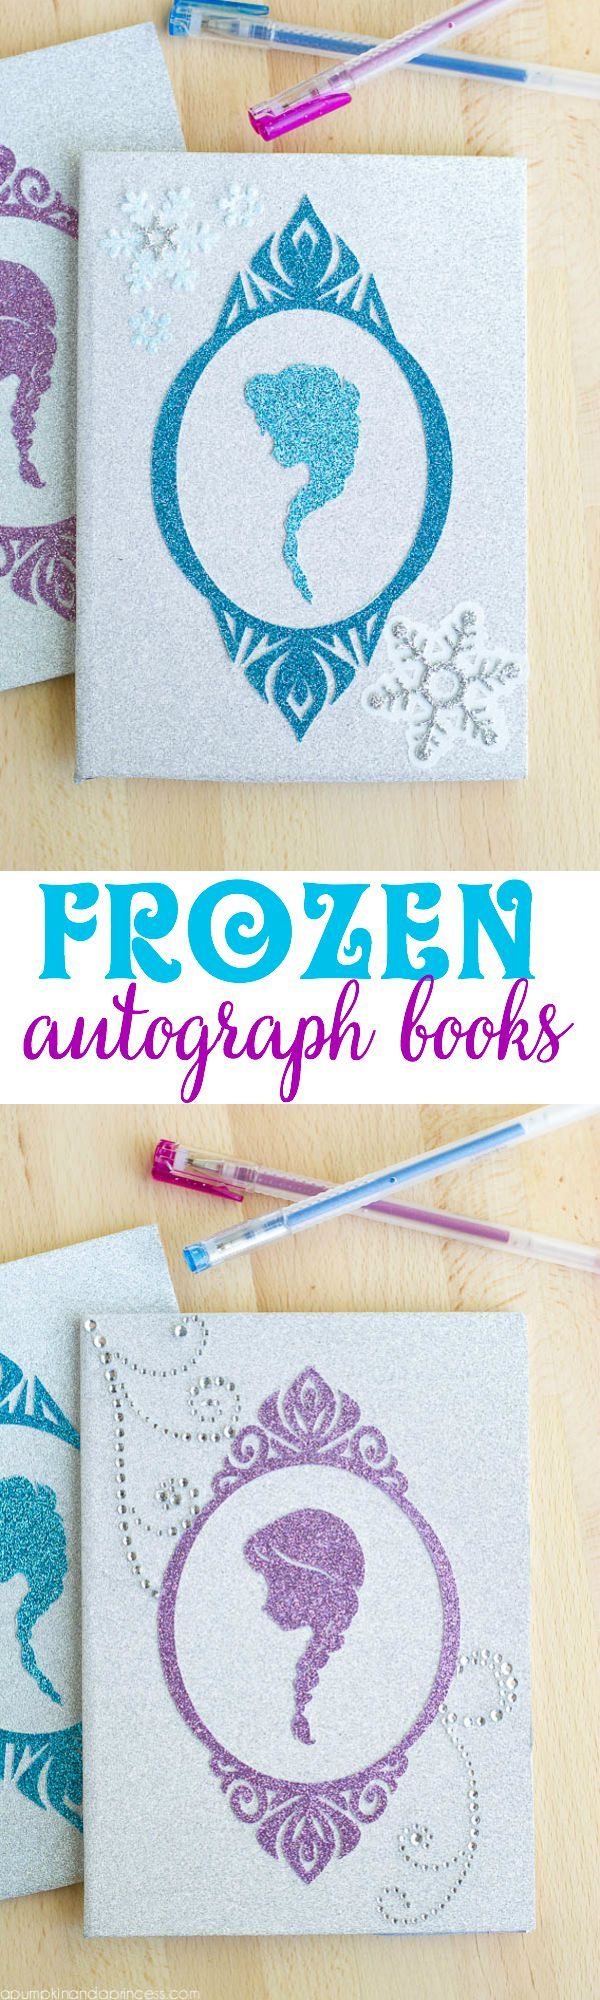 DIY and Crafts: Disney Frozen Autograph Books